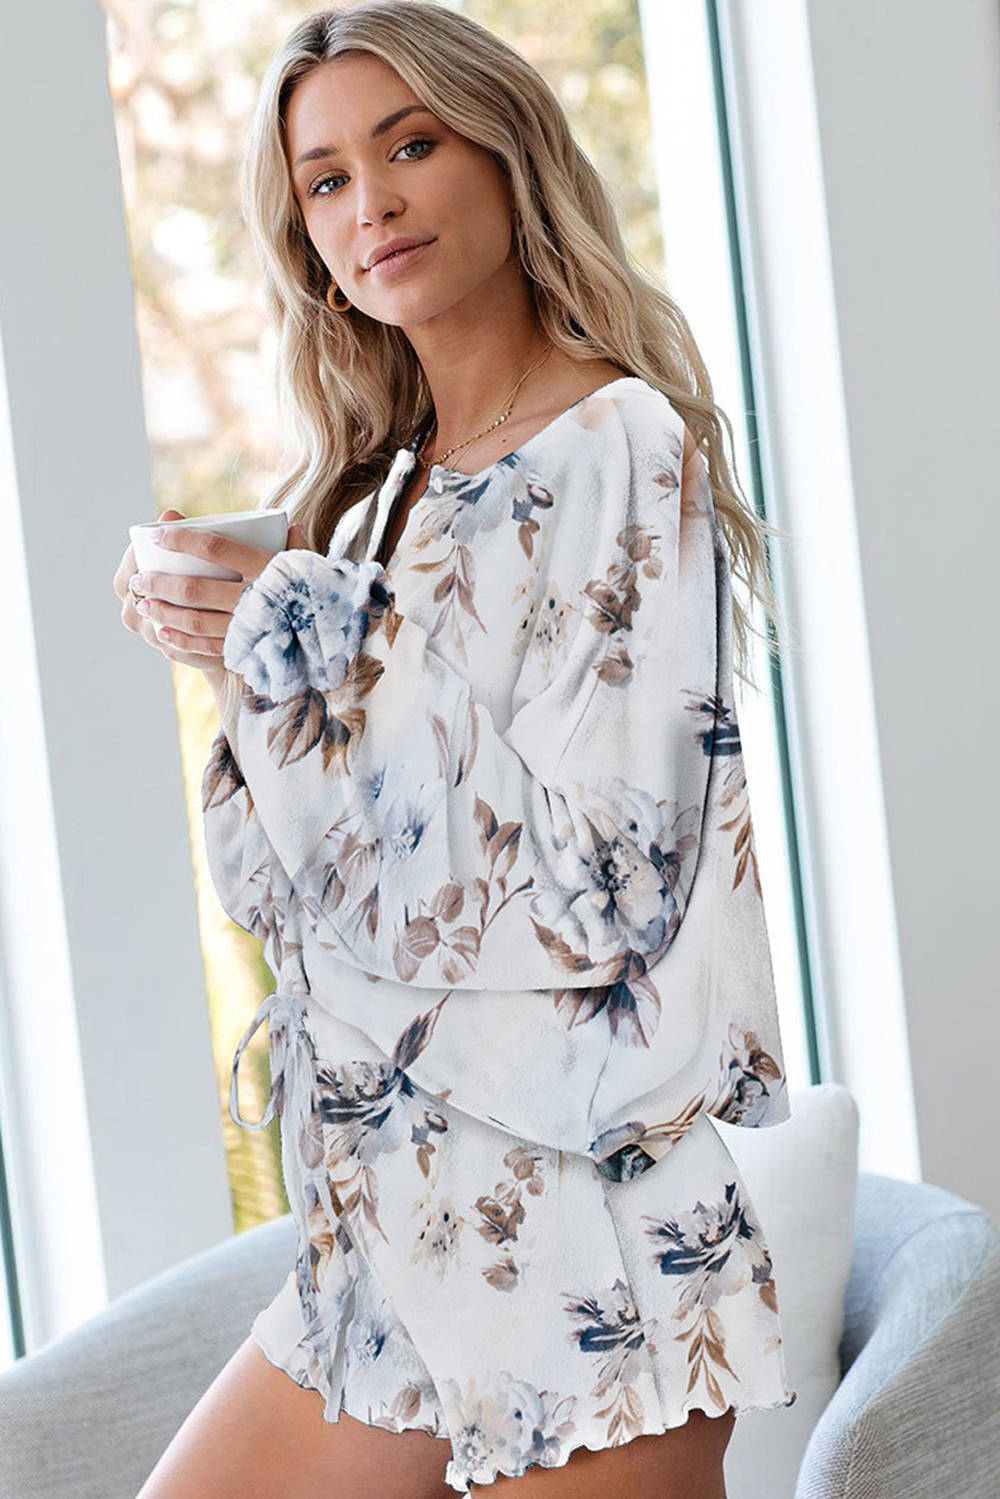 In stock supply ladies loungewear suppliers (2)